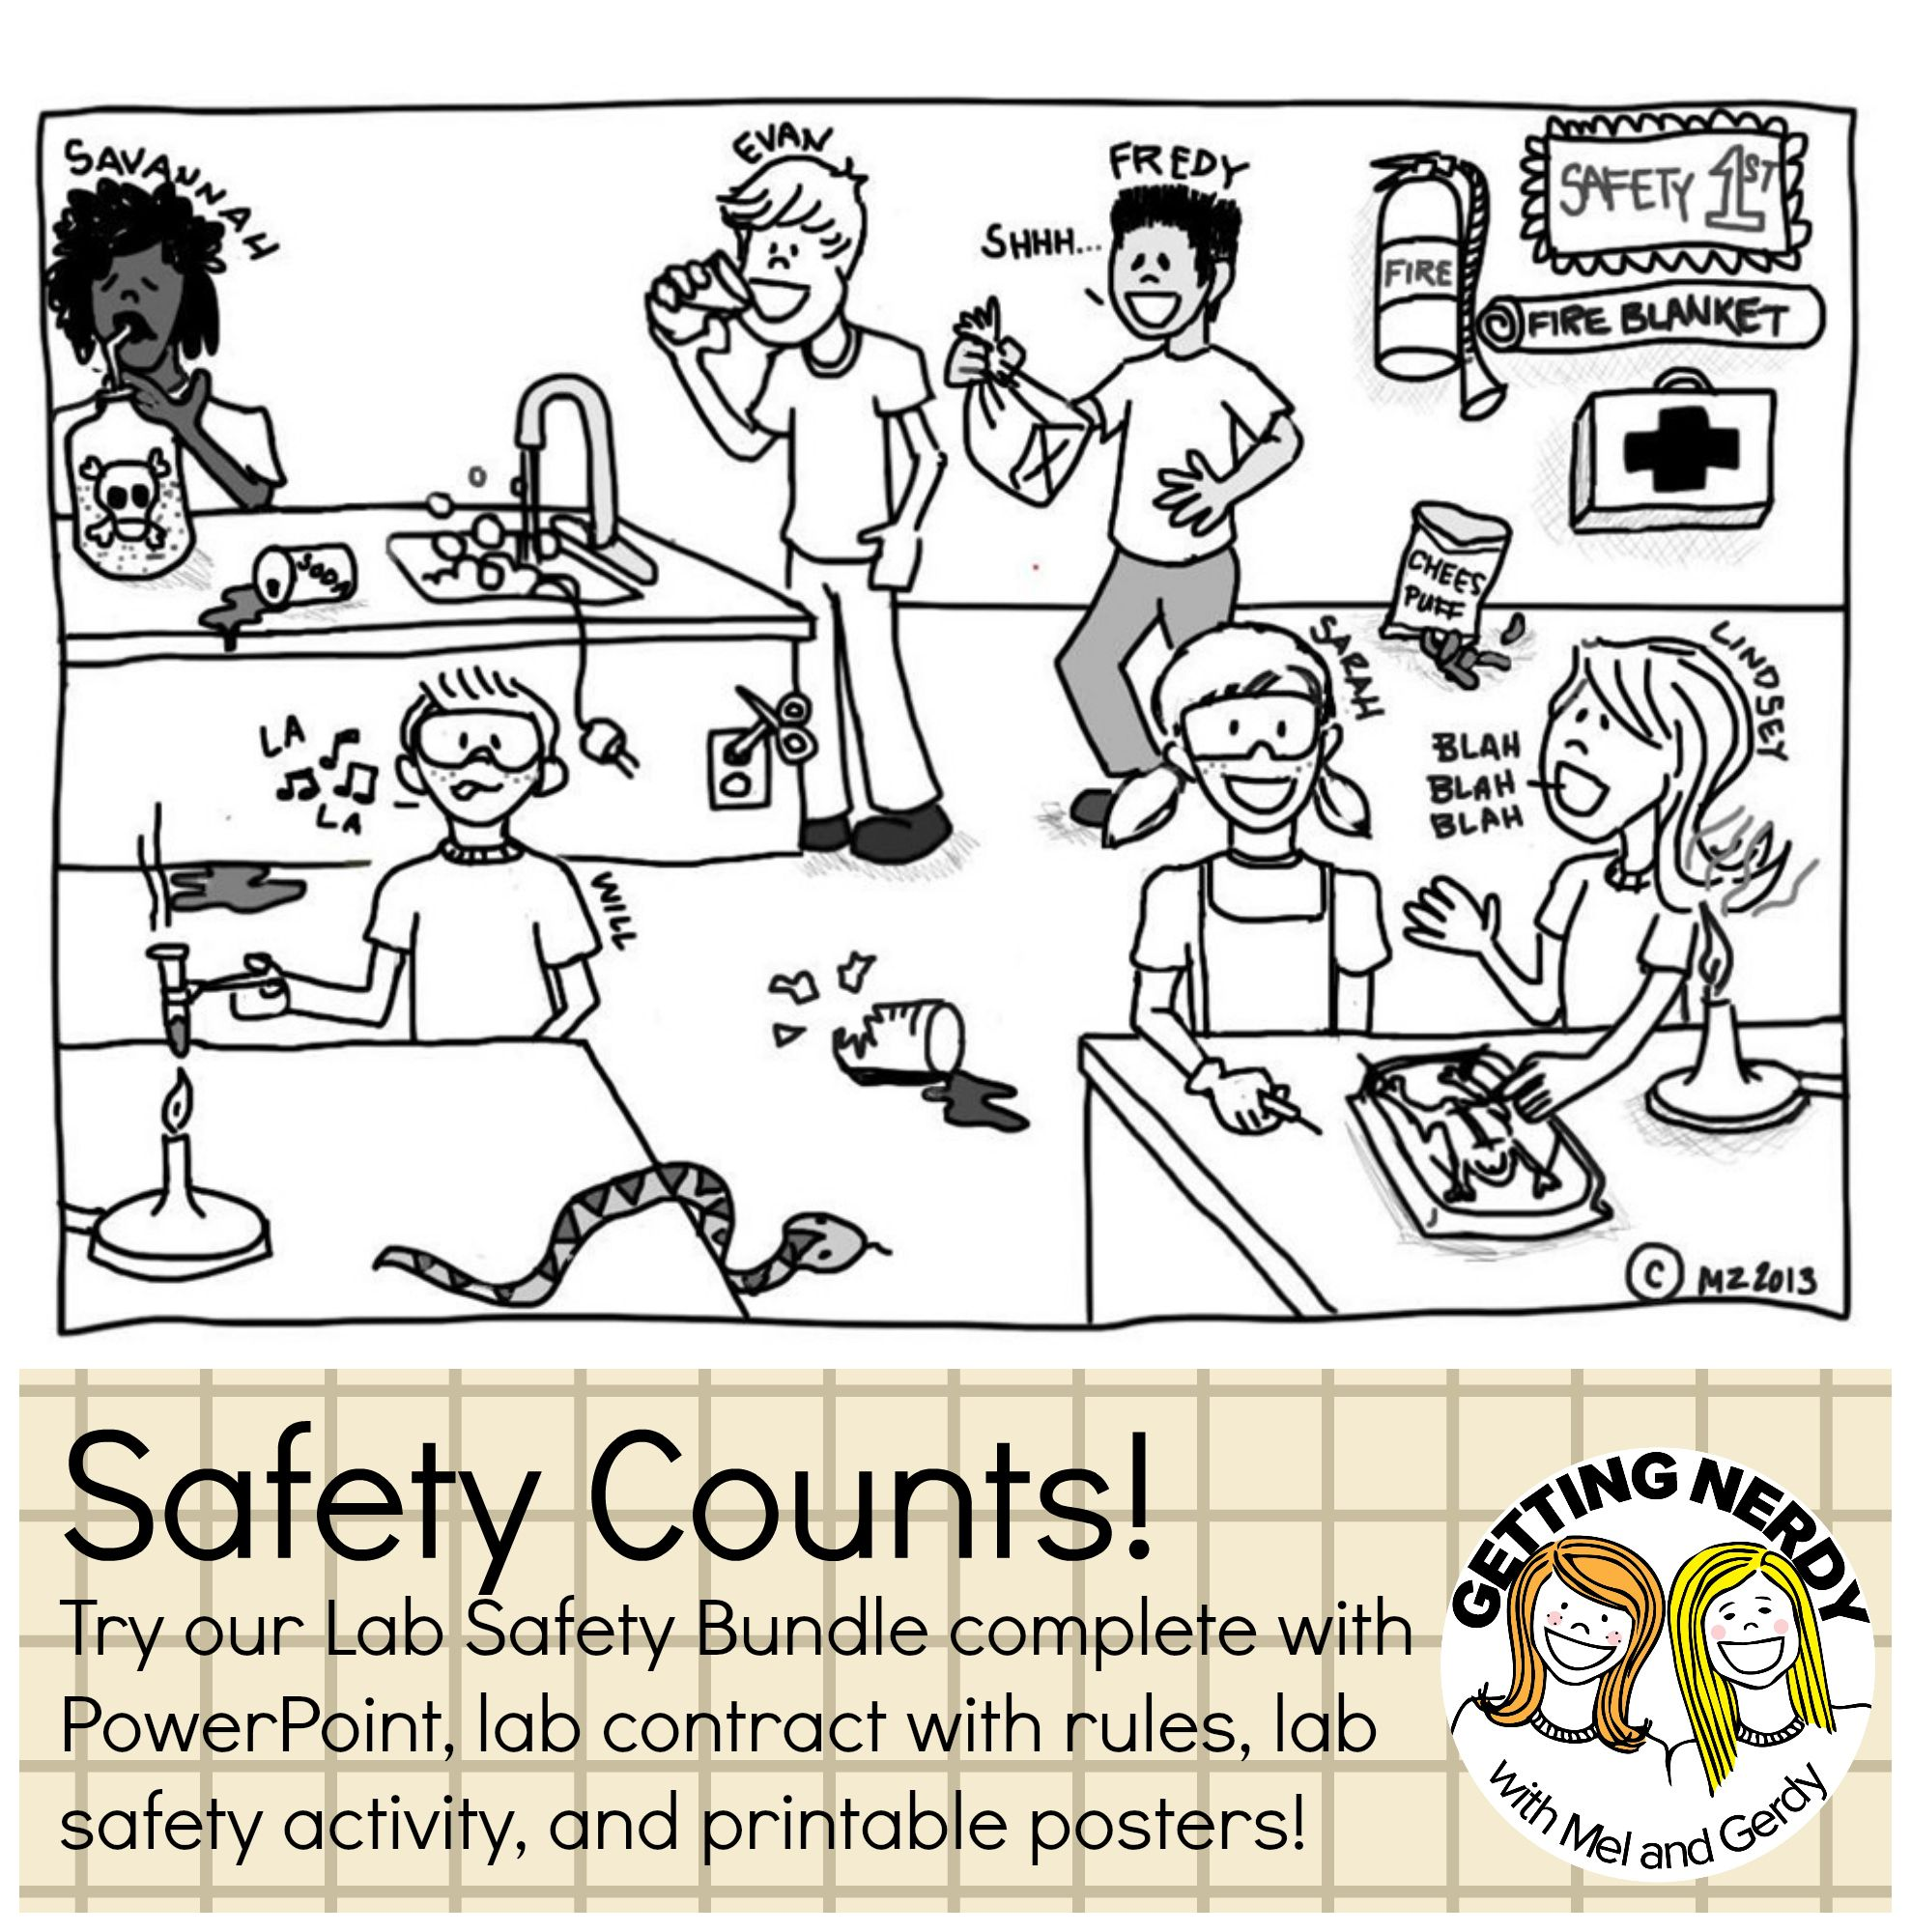 Safety Counts Use A Mishap Poster To Discuss The Rights